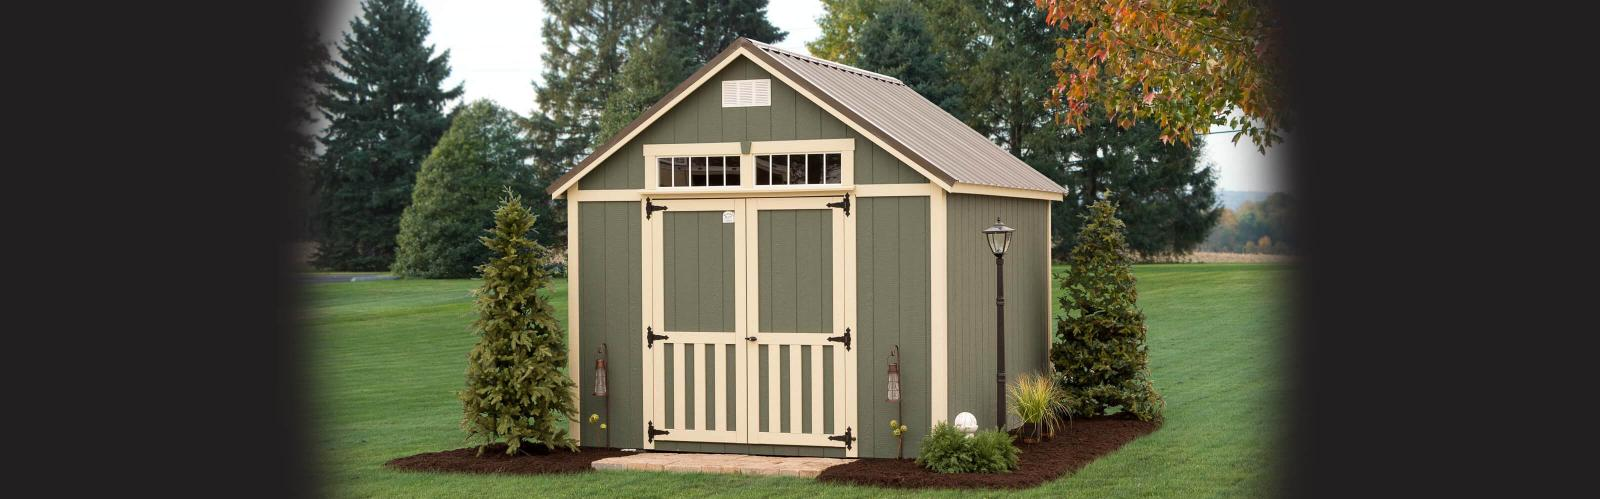 Amish Backyard Storage Shed